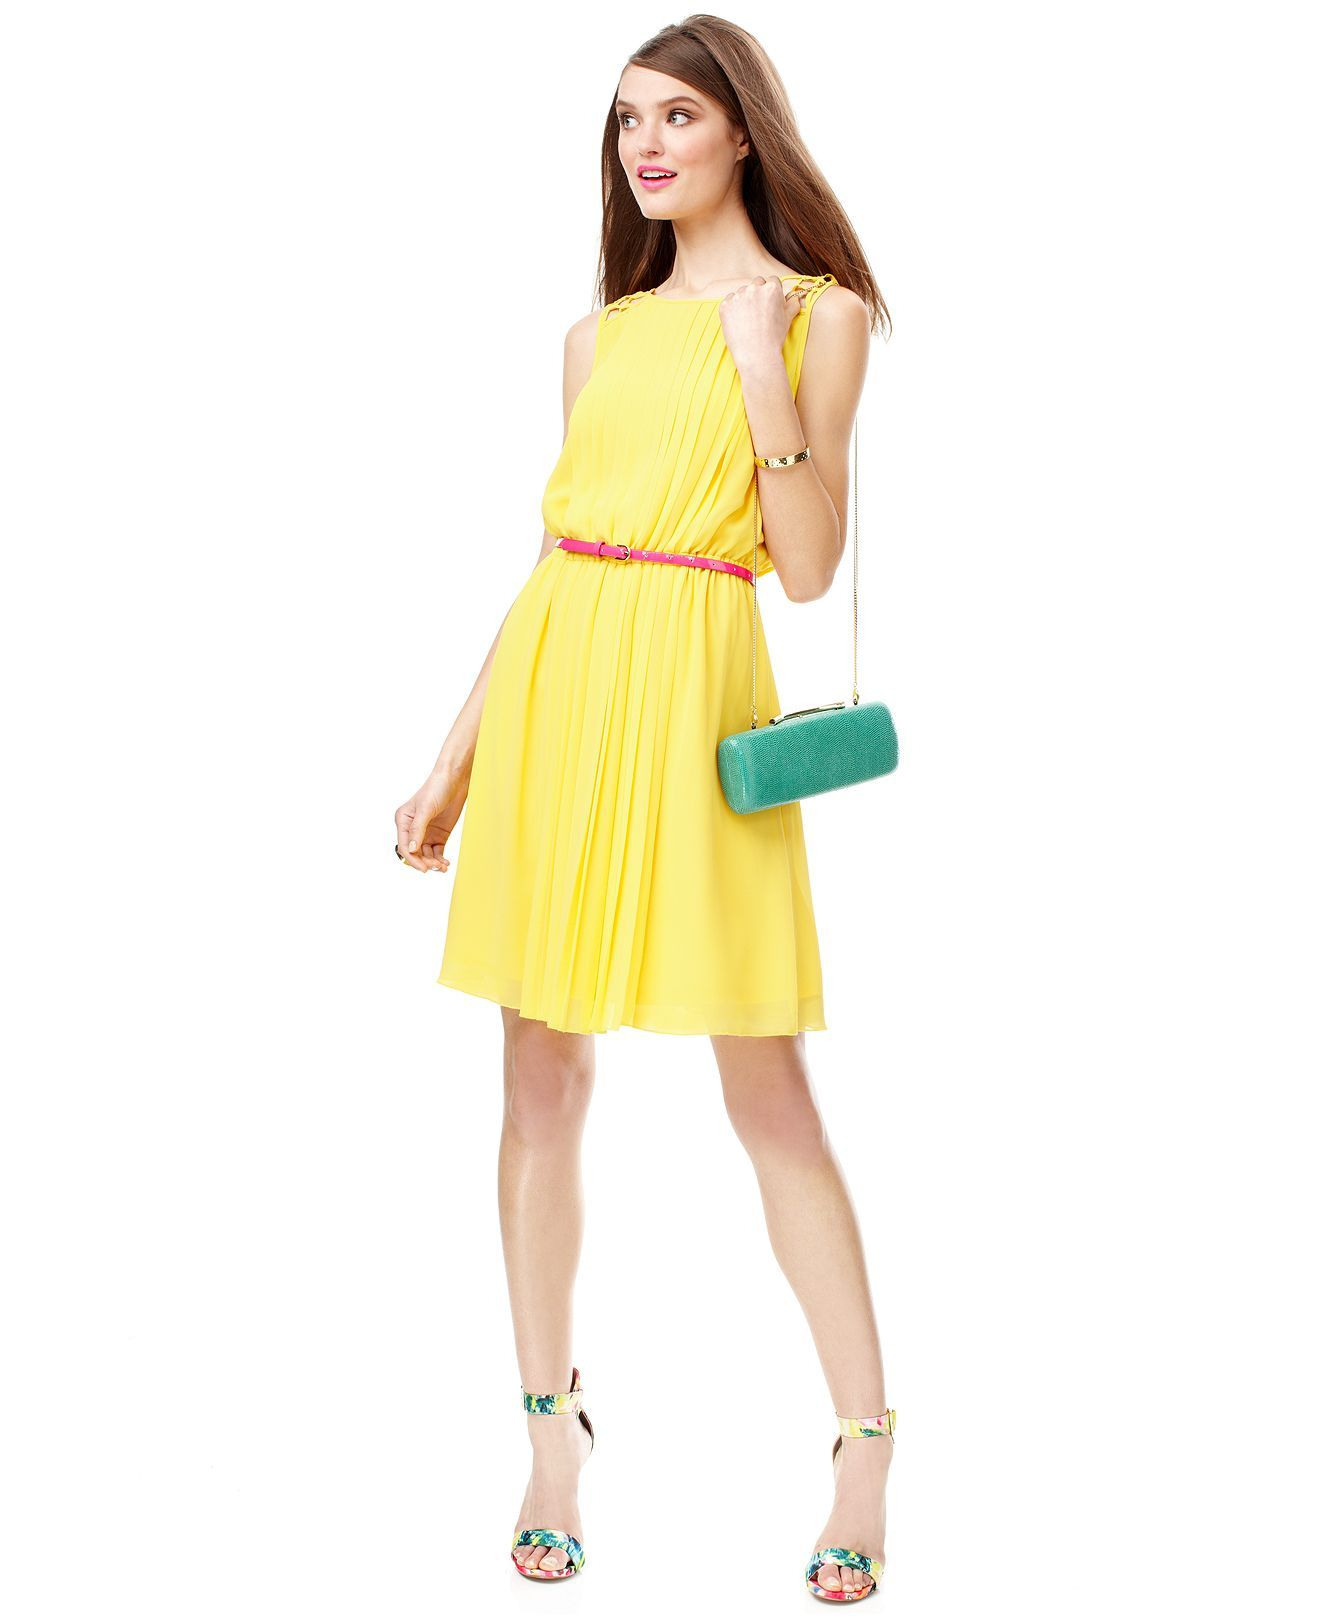 44a35245a973 The Dress Diaries Yellow Do-It-All Dress Look - Dresses - Women - Macy s